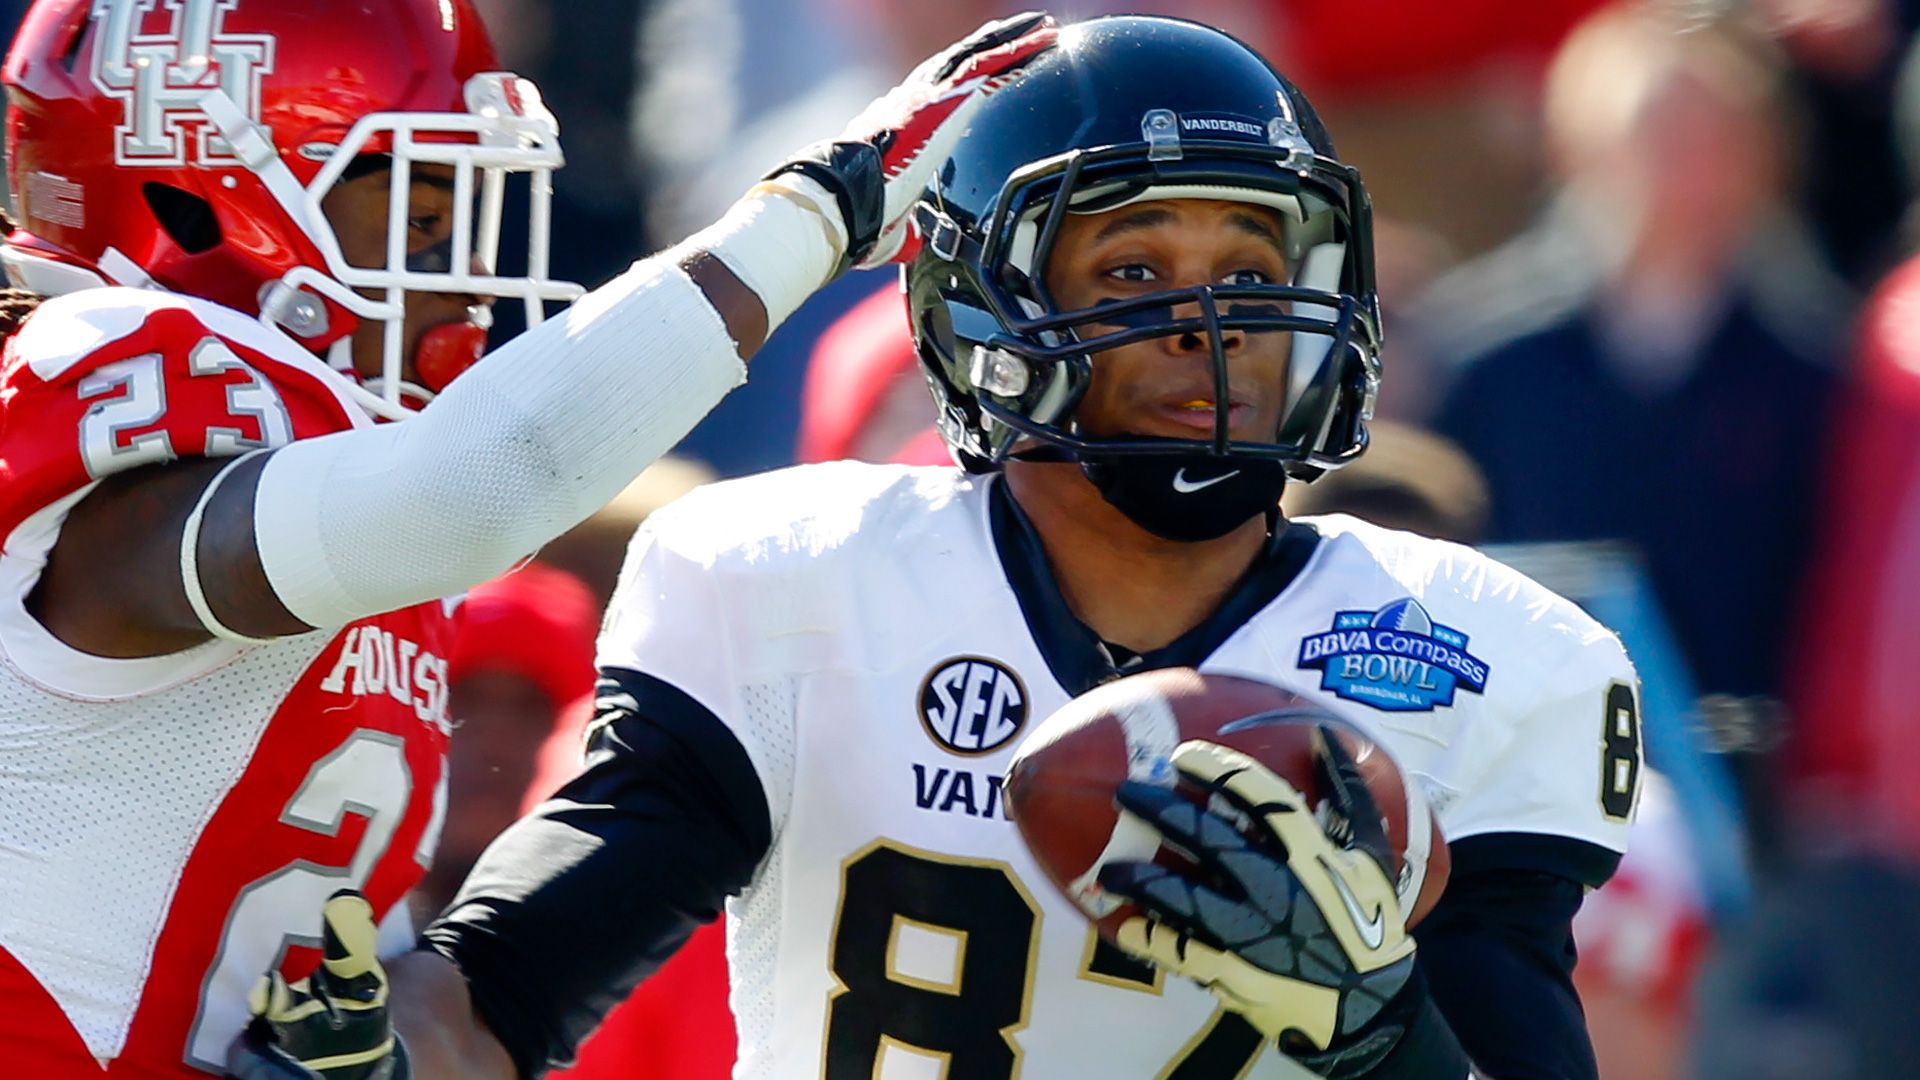 2014 NFL Draft -- Eagles select Jordan Matthews in second round